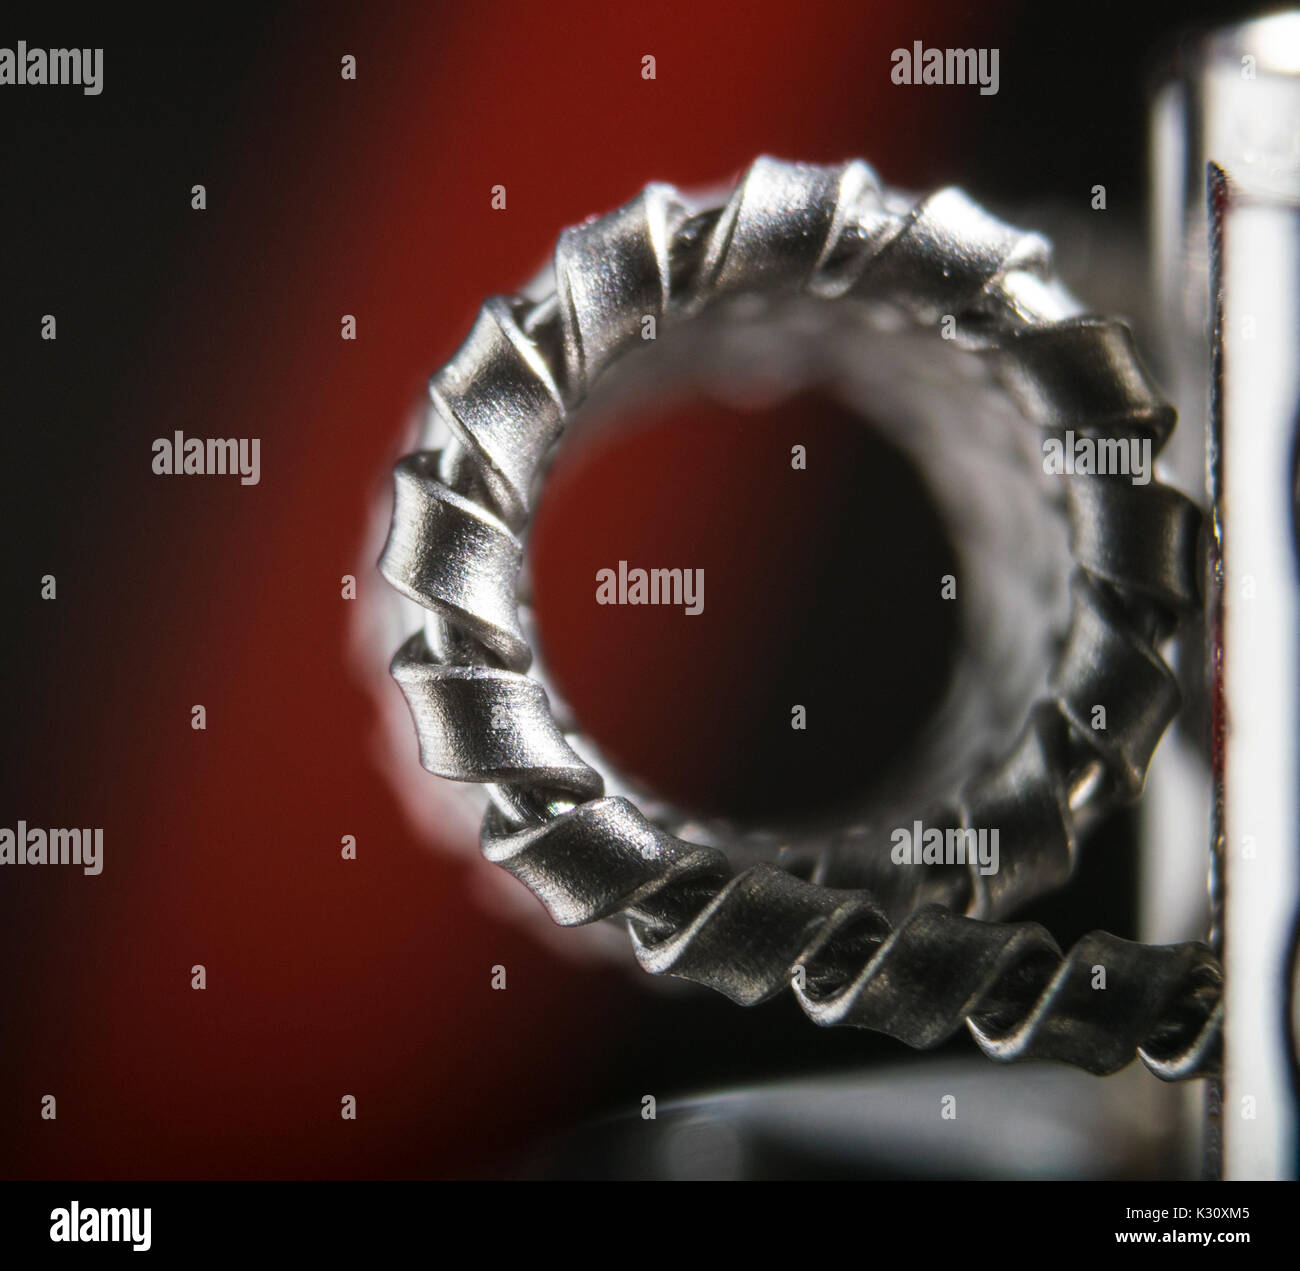 side veiw of a clapton vape coil for e-cigarette, e-cig. - Stock Image